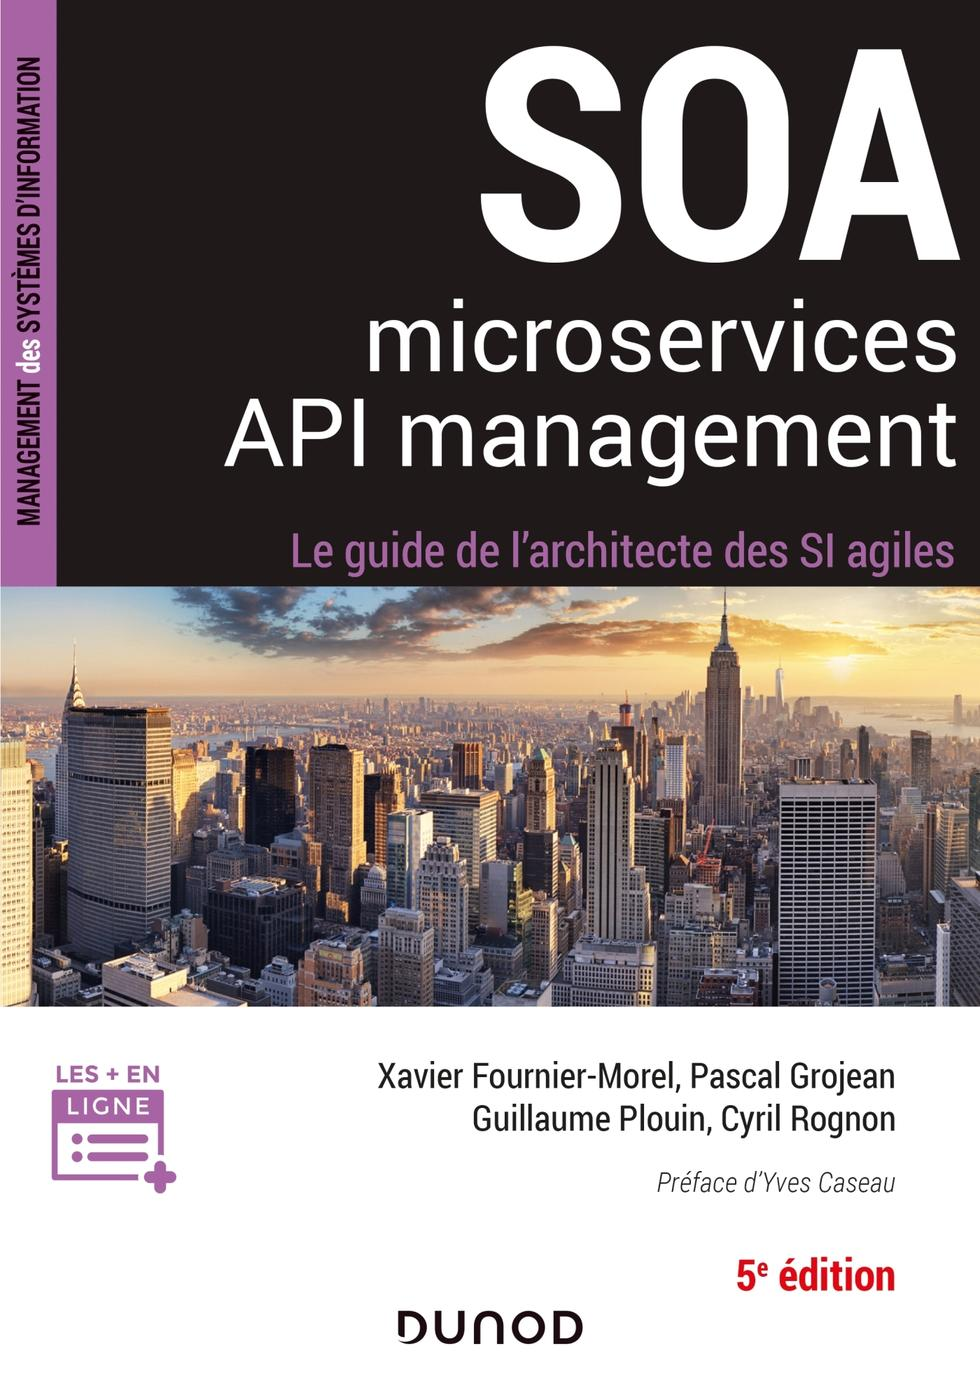 Soa Microservices Api Management Guillaume Plouin Pascal Librairie Eyrolles